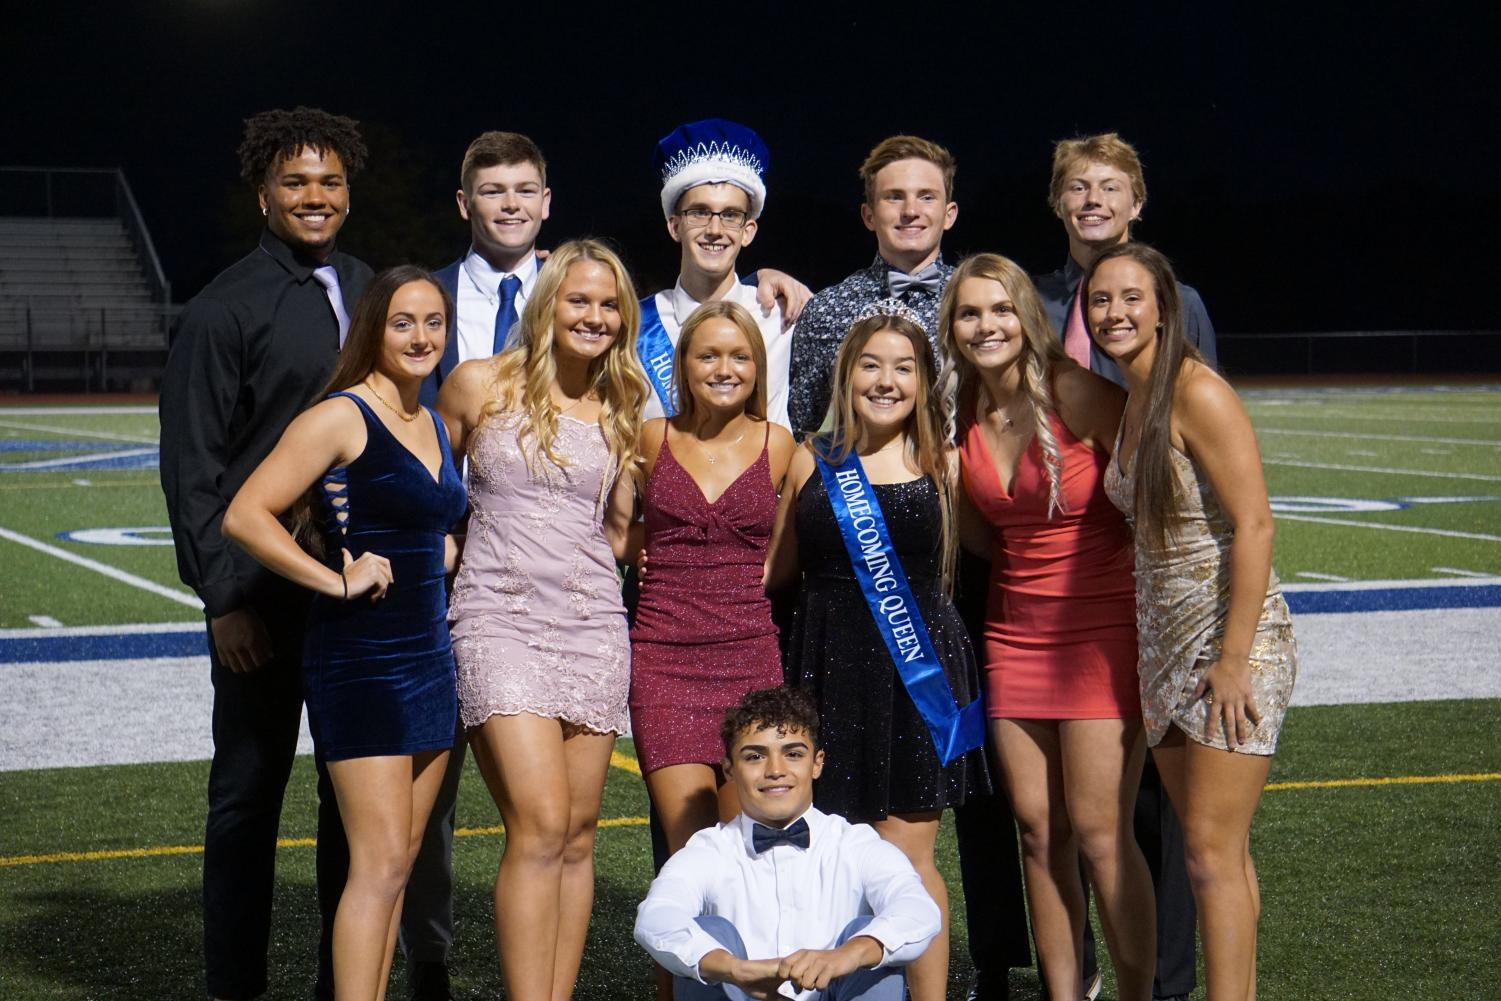 Congratulations to the 2020 Homecoming Court!